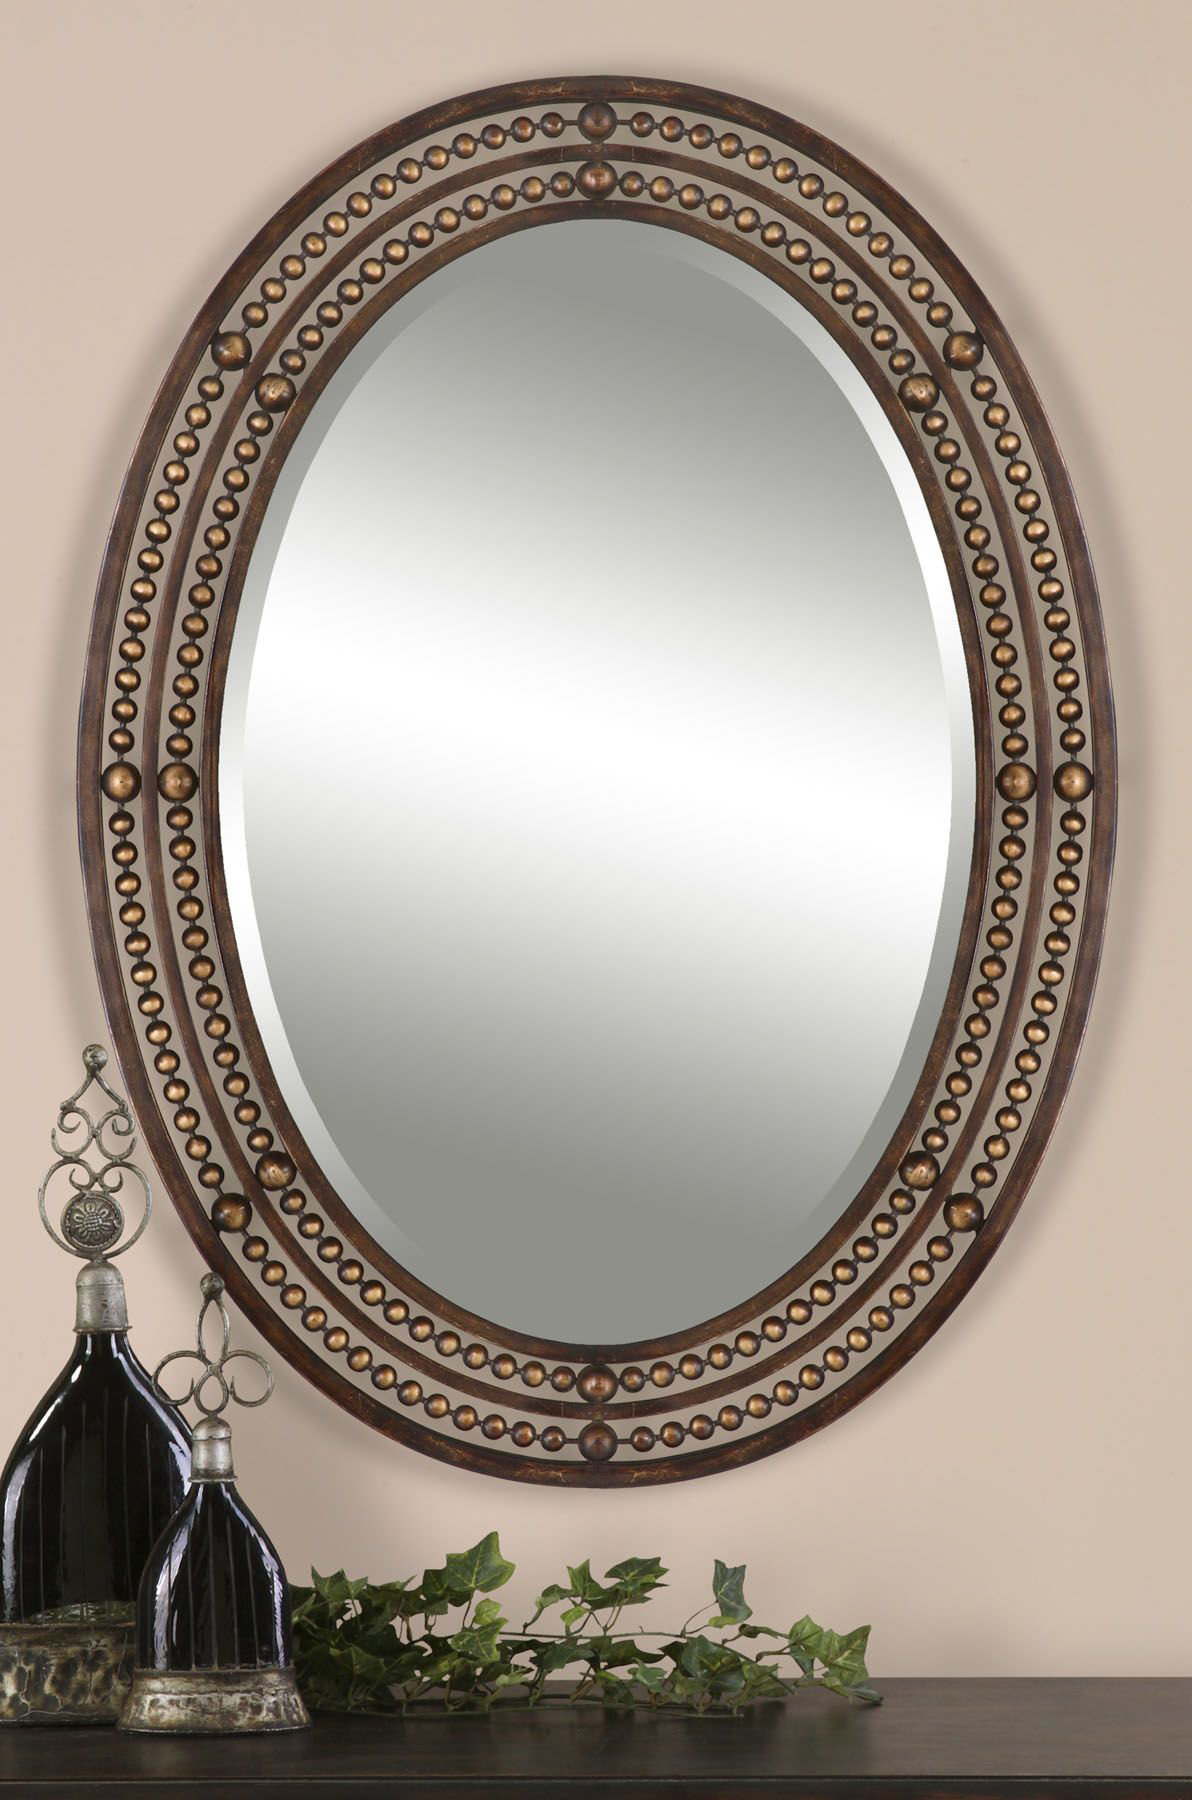 Leeper Oval Wall Mirror For Pfister Oval Wood Wall Mirrors (Image 9 of 20)